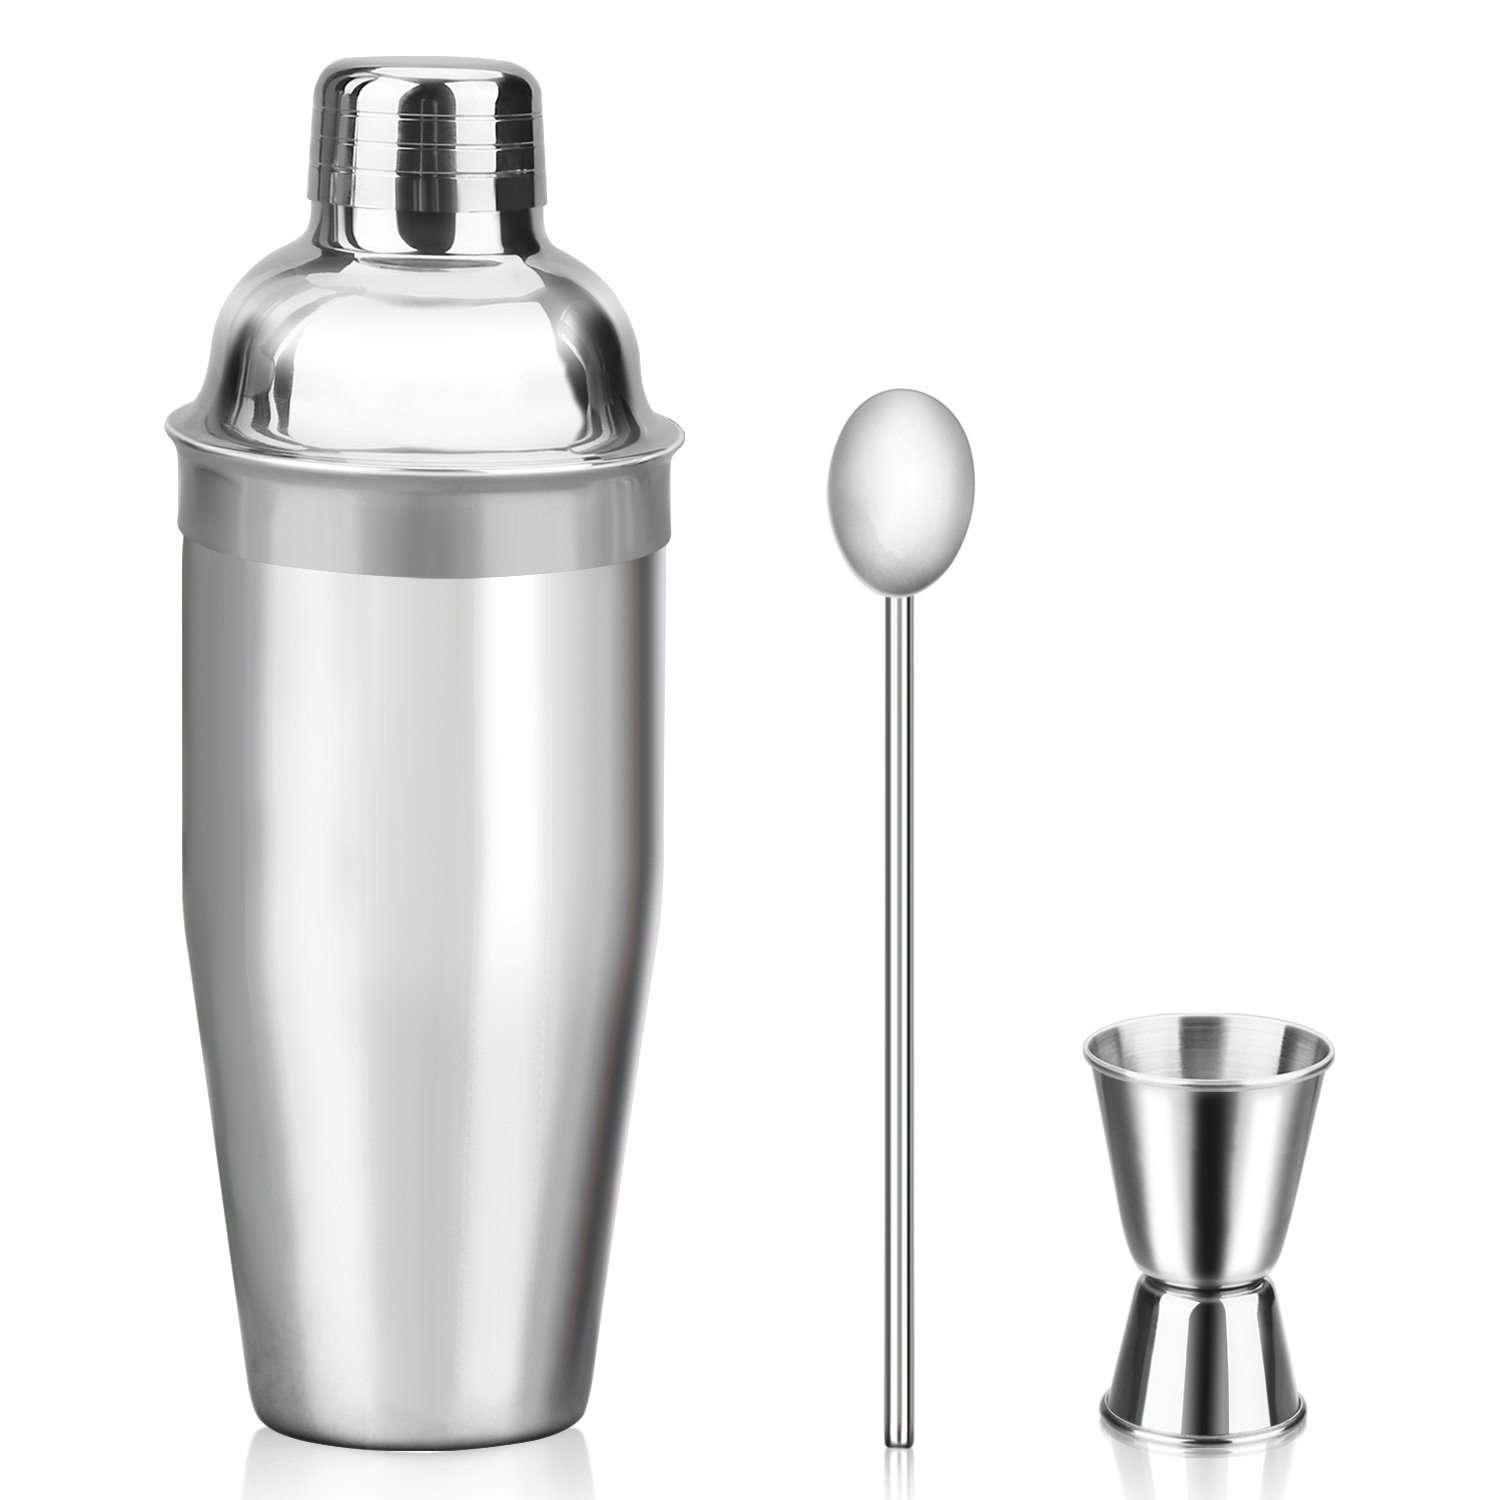 Mngarista 24 oz Cocktail Shaker Set - Drink Shaker - Bartender Kit - Stainless Steel Martini Shaker with Double Jigger and Stainless Steel Straw by Vria